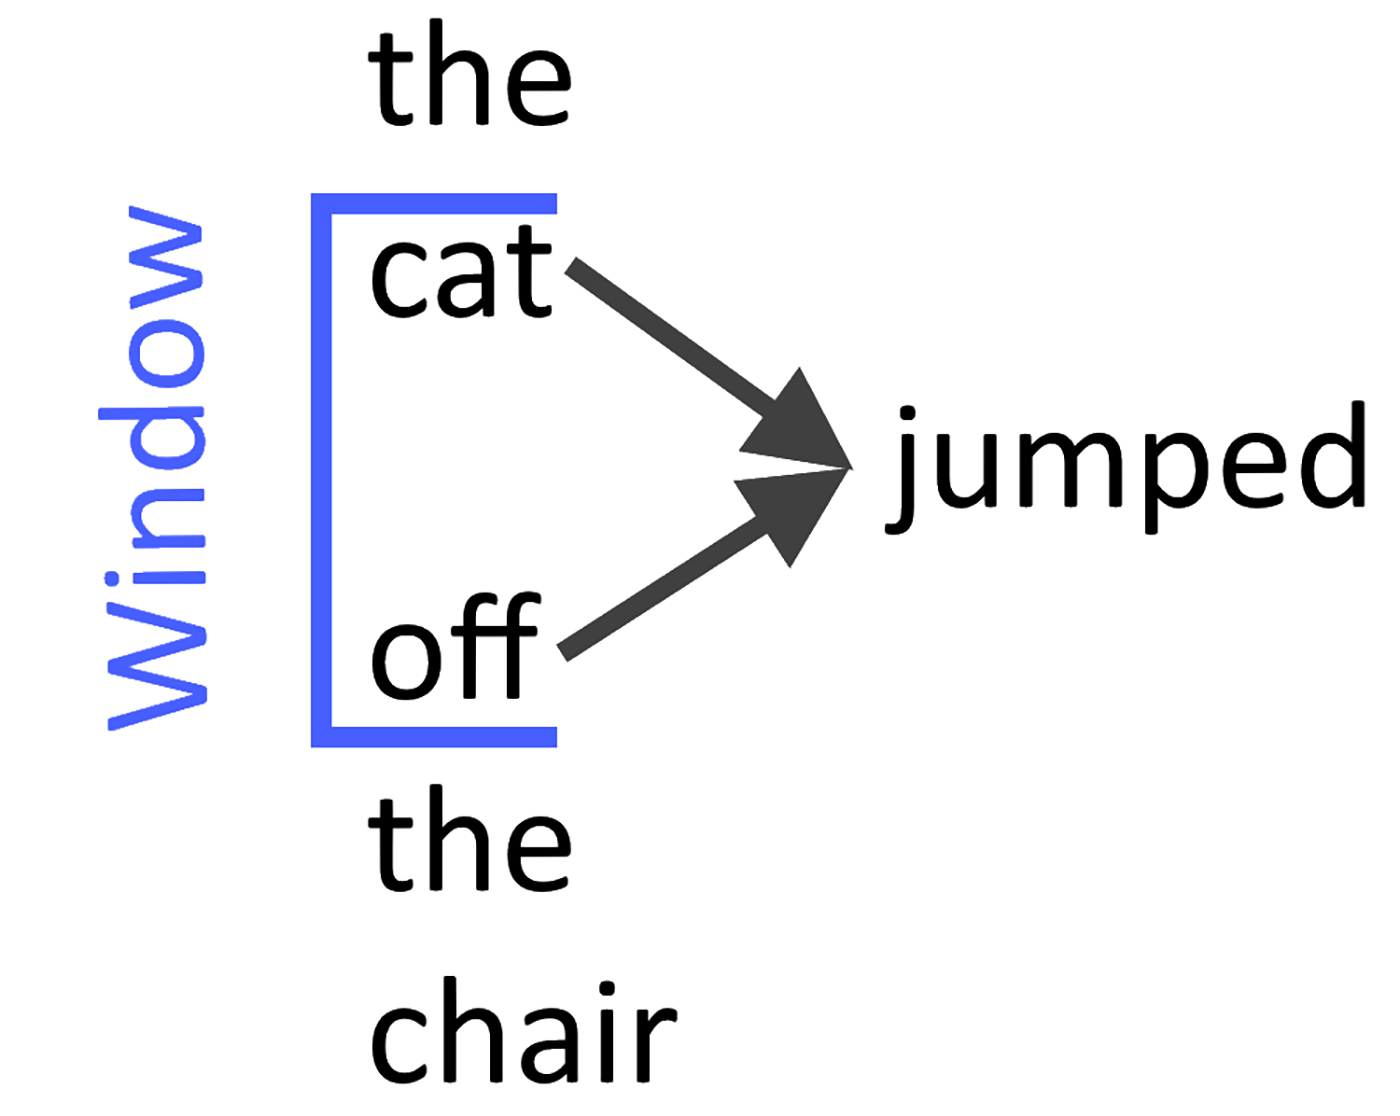 Predicting the word given its context.